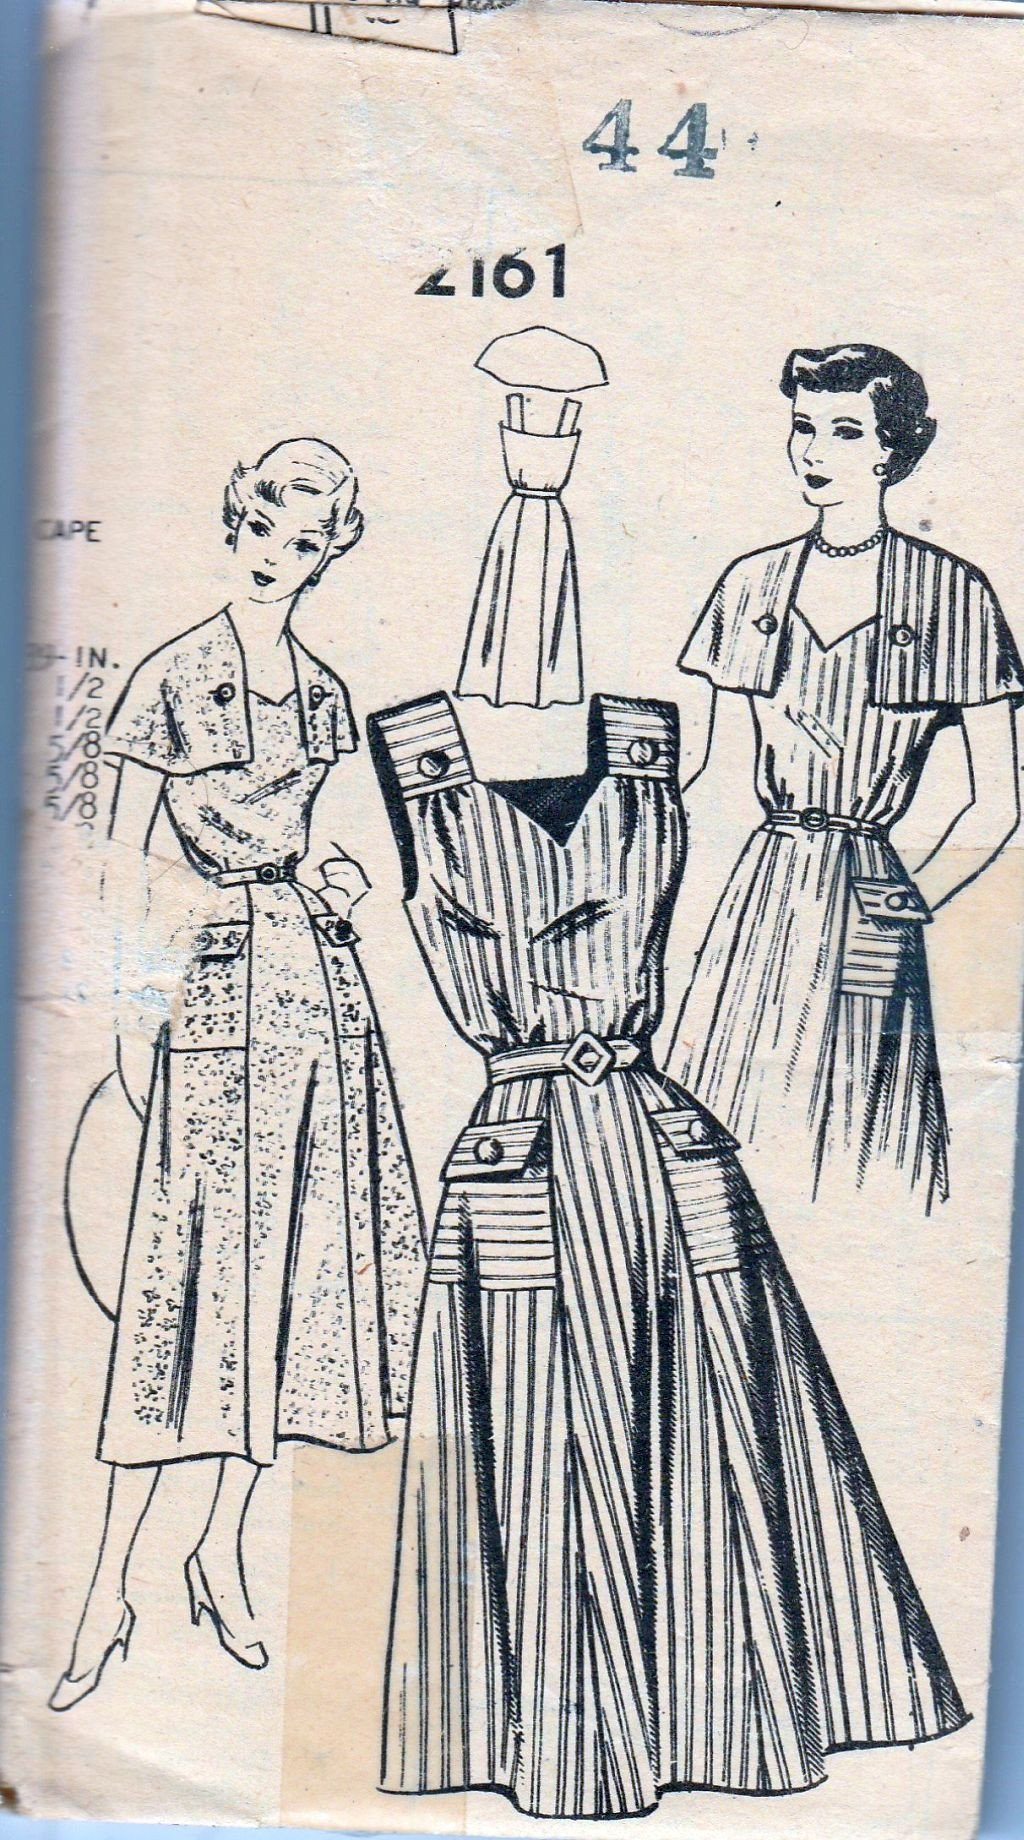 Mail Order 2161 Vintage 1940's Sewing Pattern Ladies Dress Cape - VintageStitching - Vintage Sewing Patterns